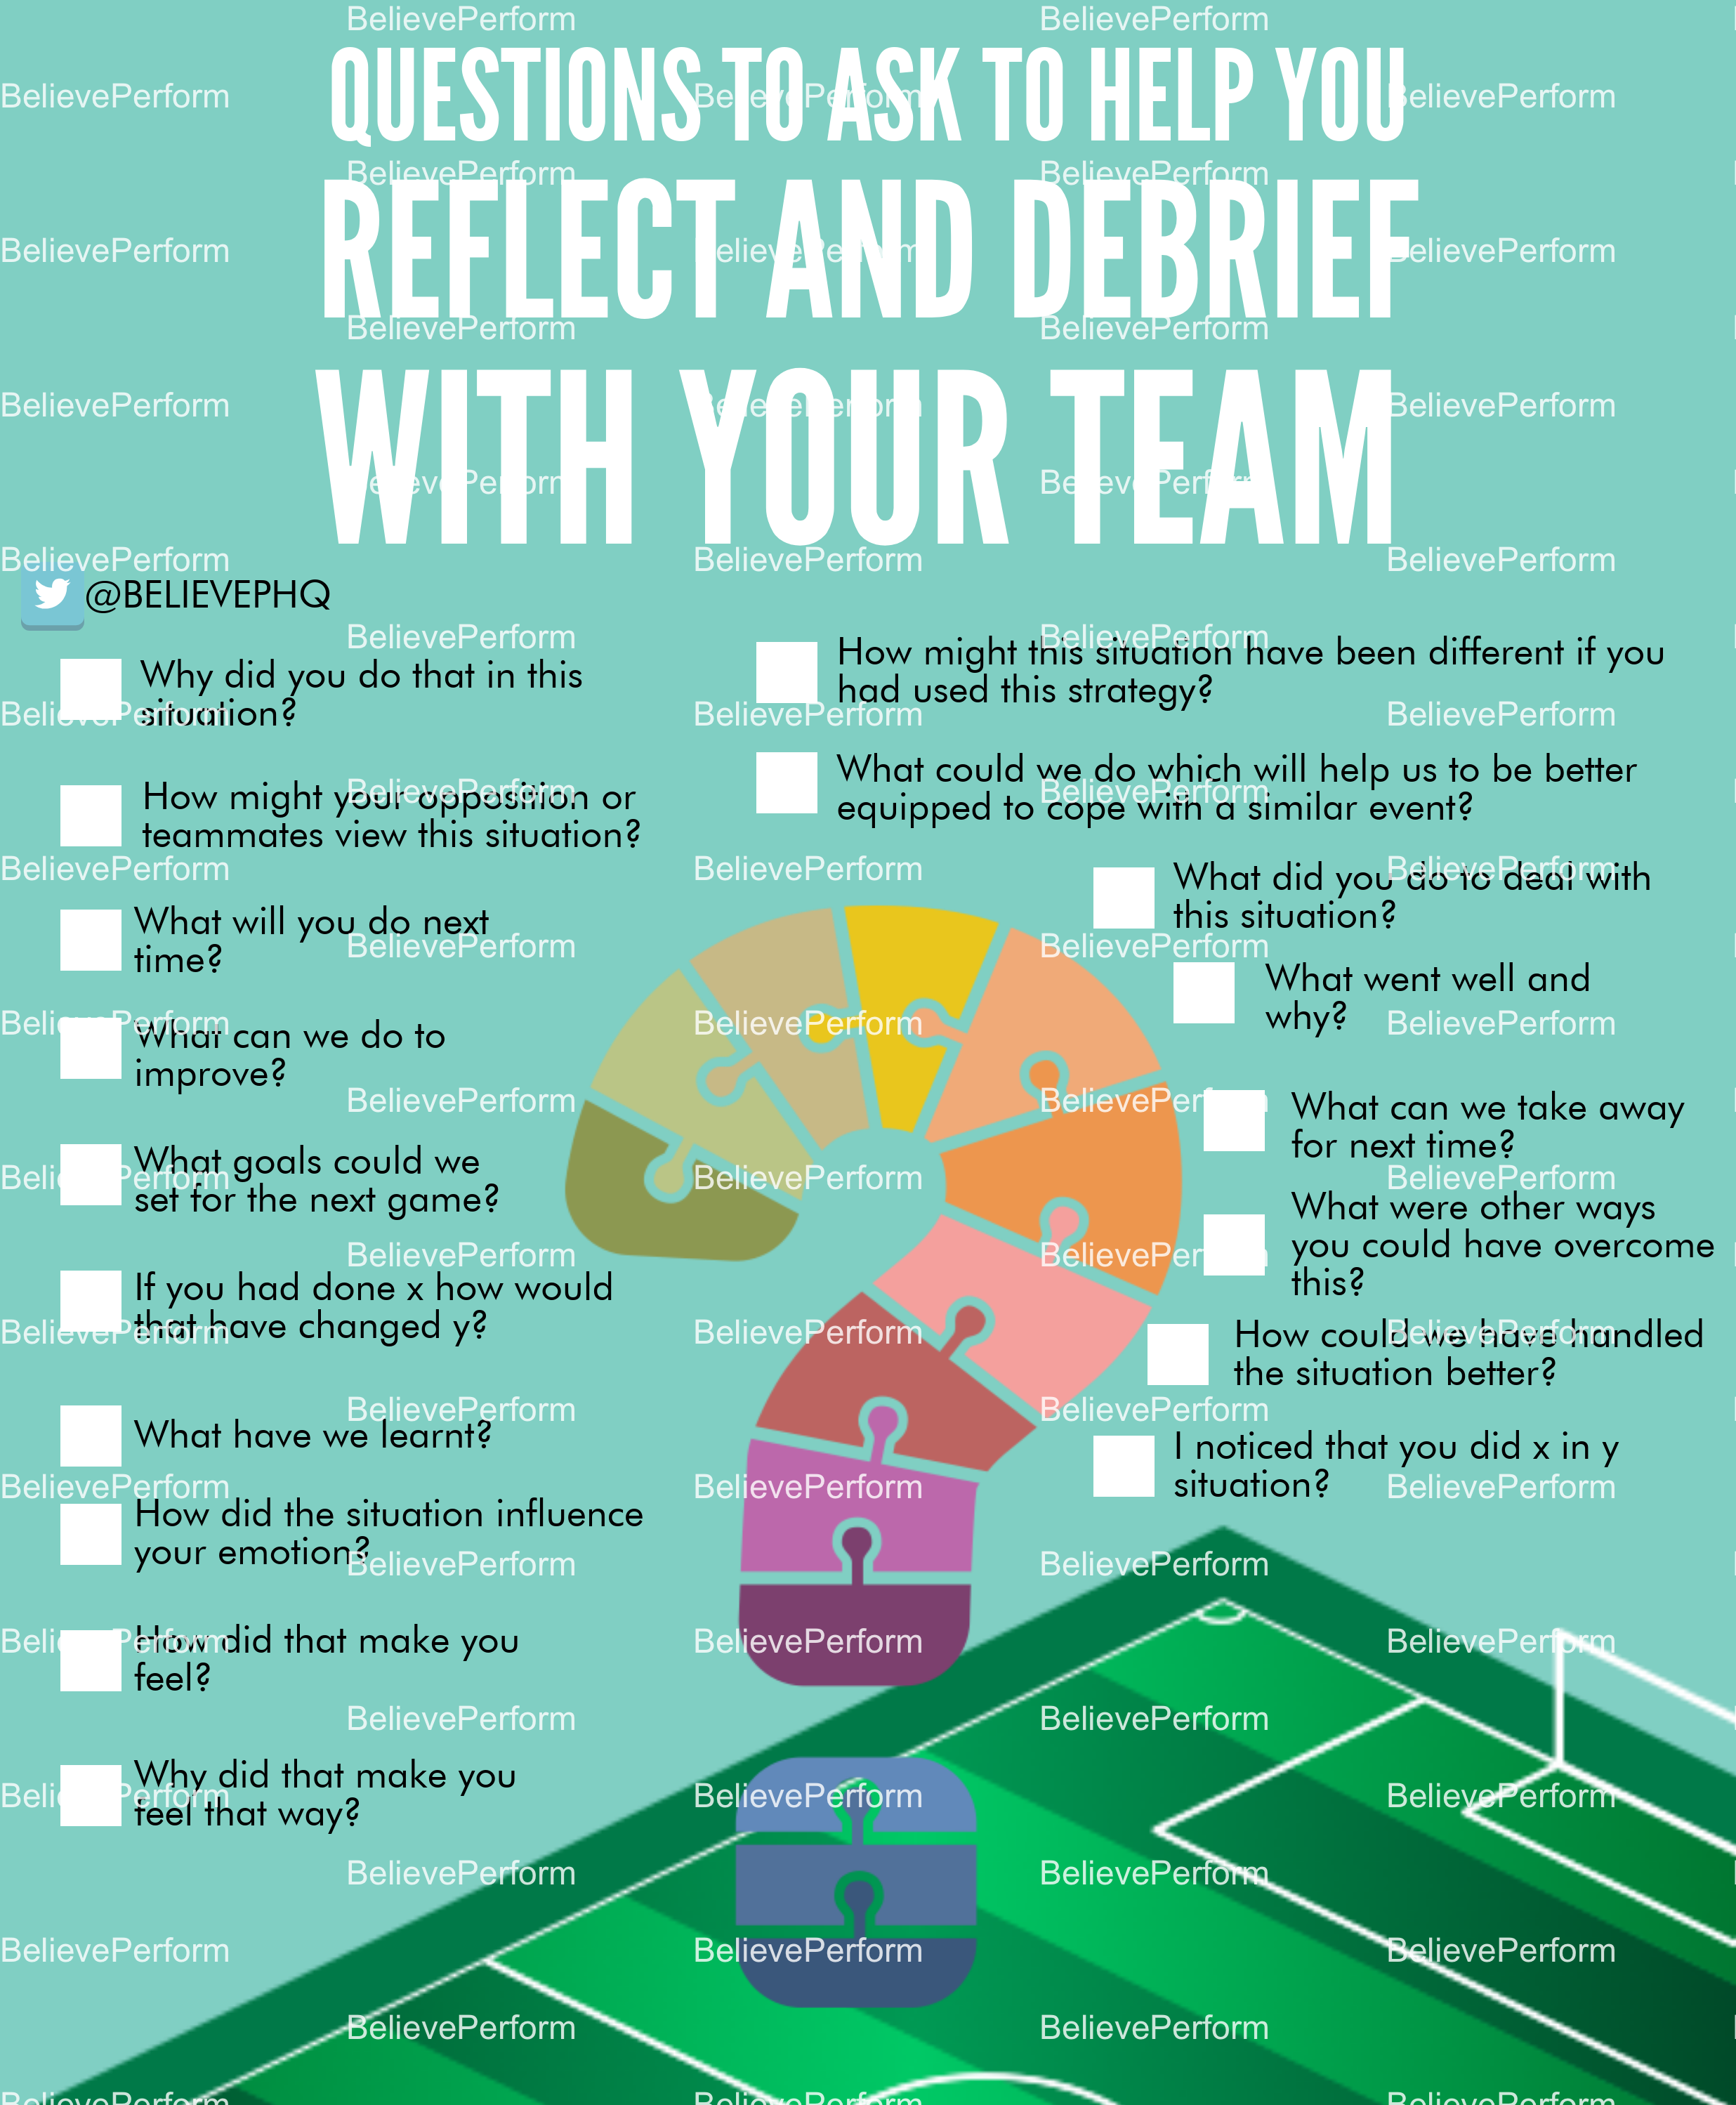 Questions to ask to help you reflect and debrief with your team